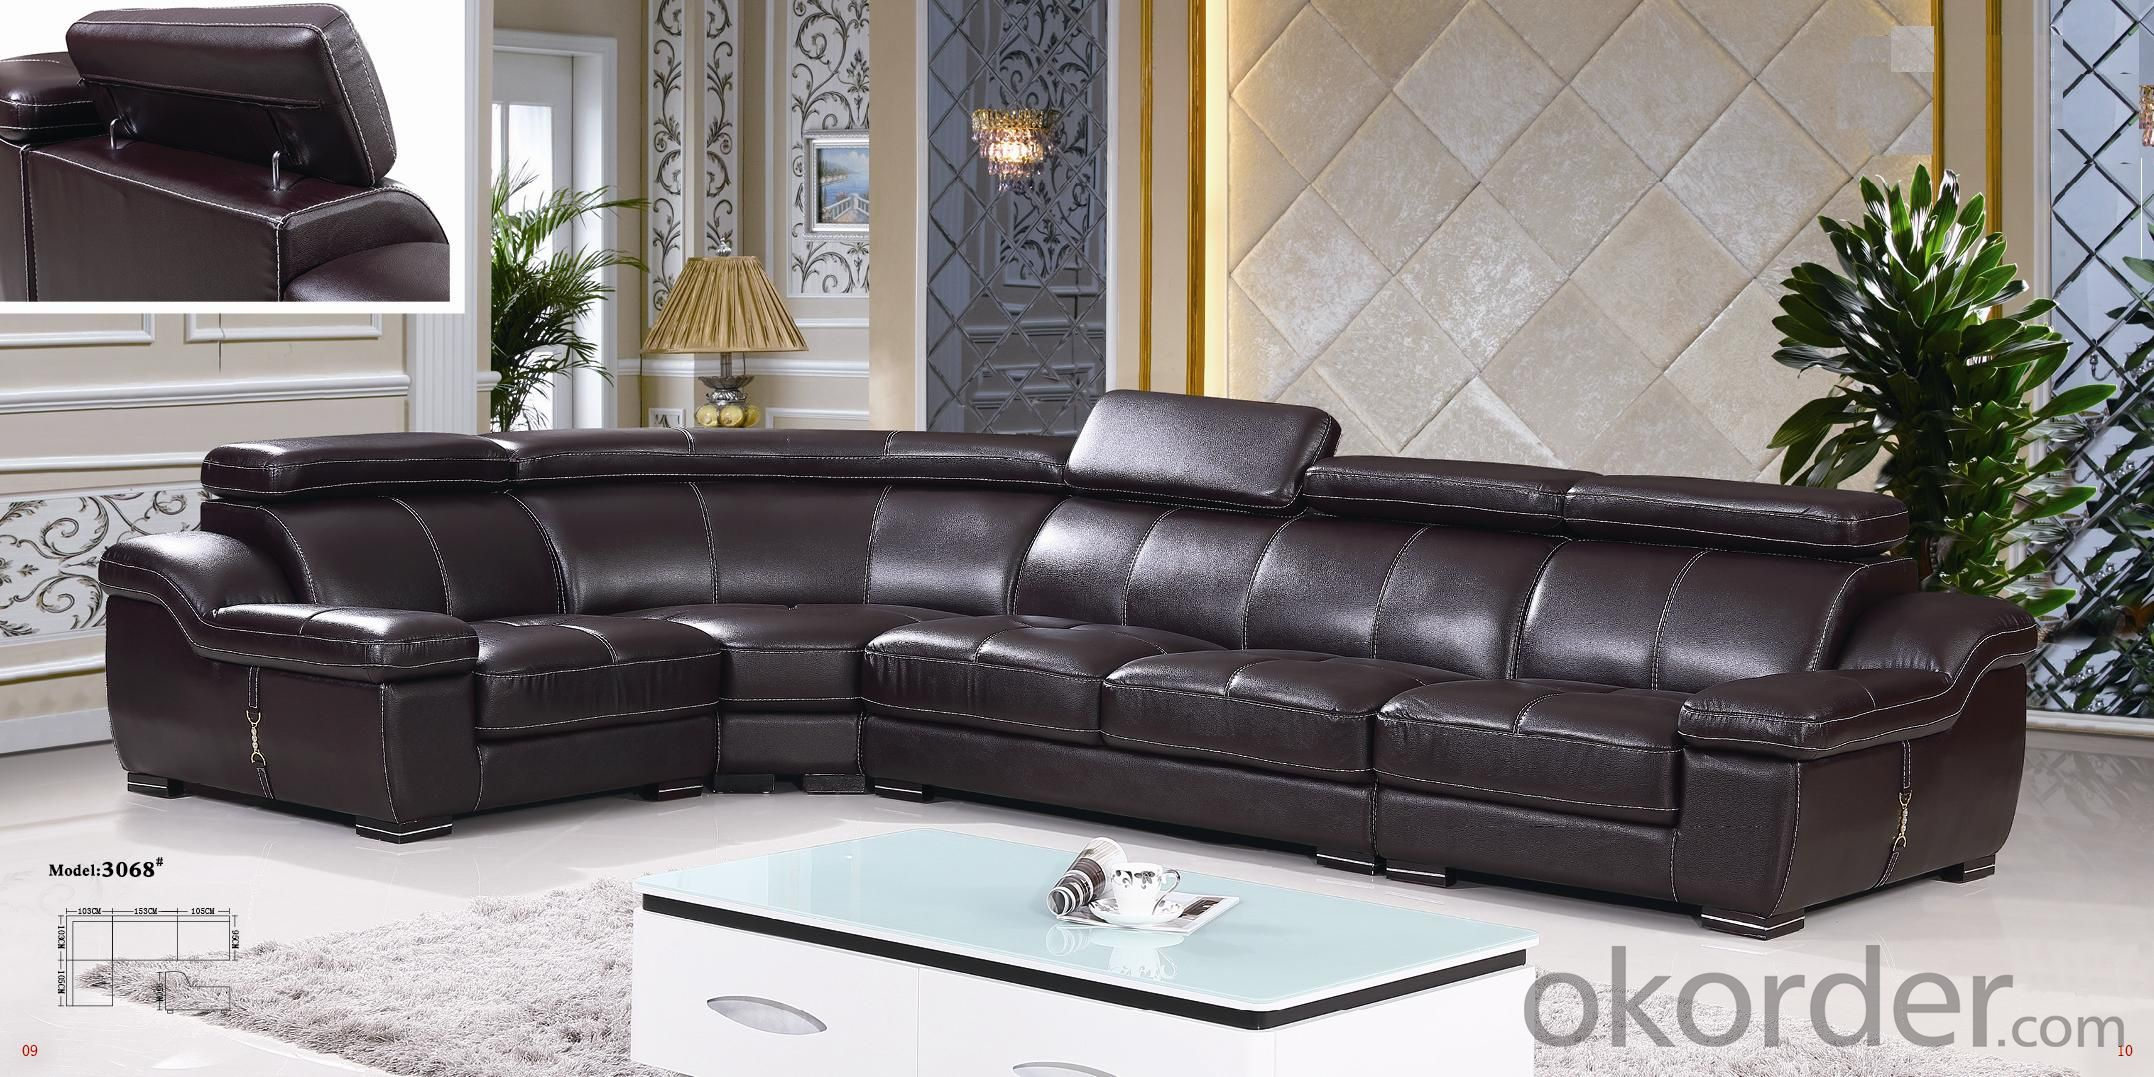 Leather sofa model-20